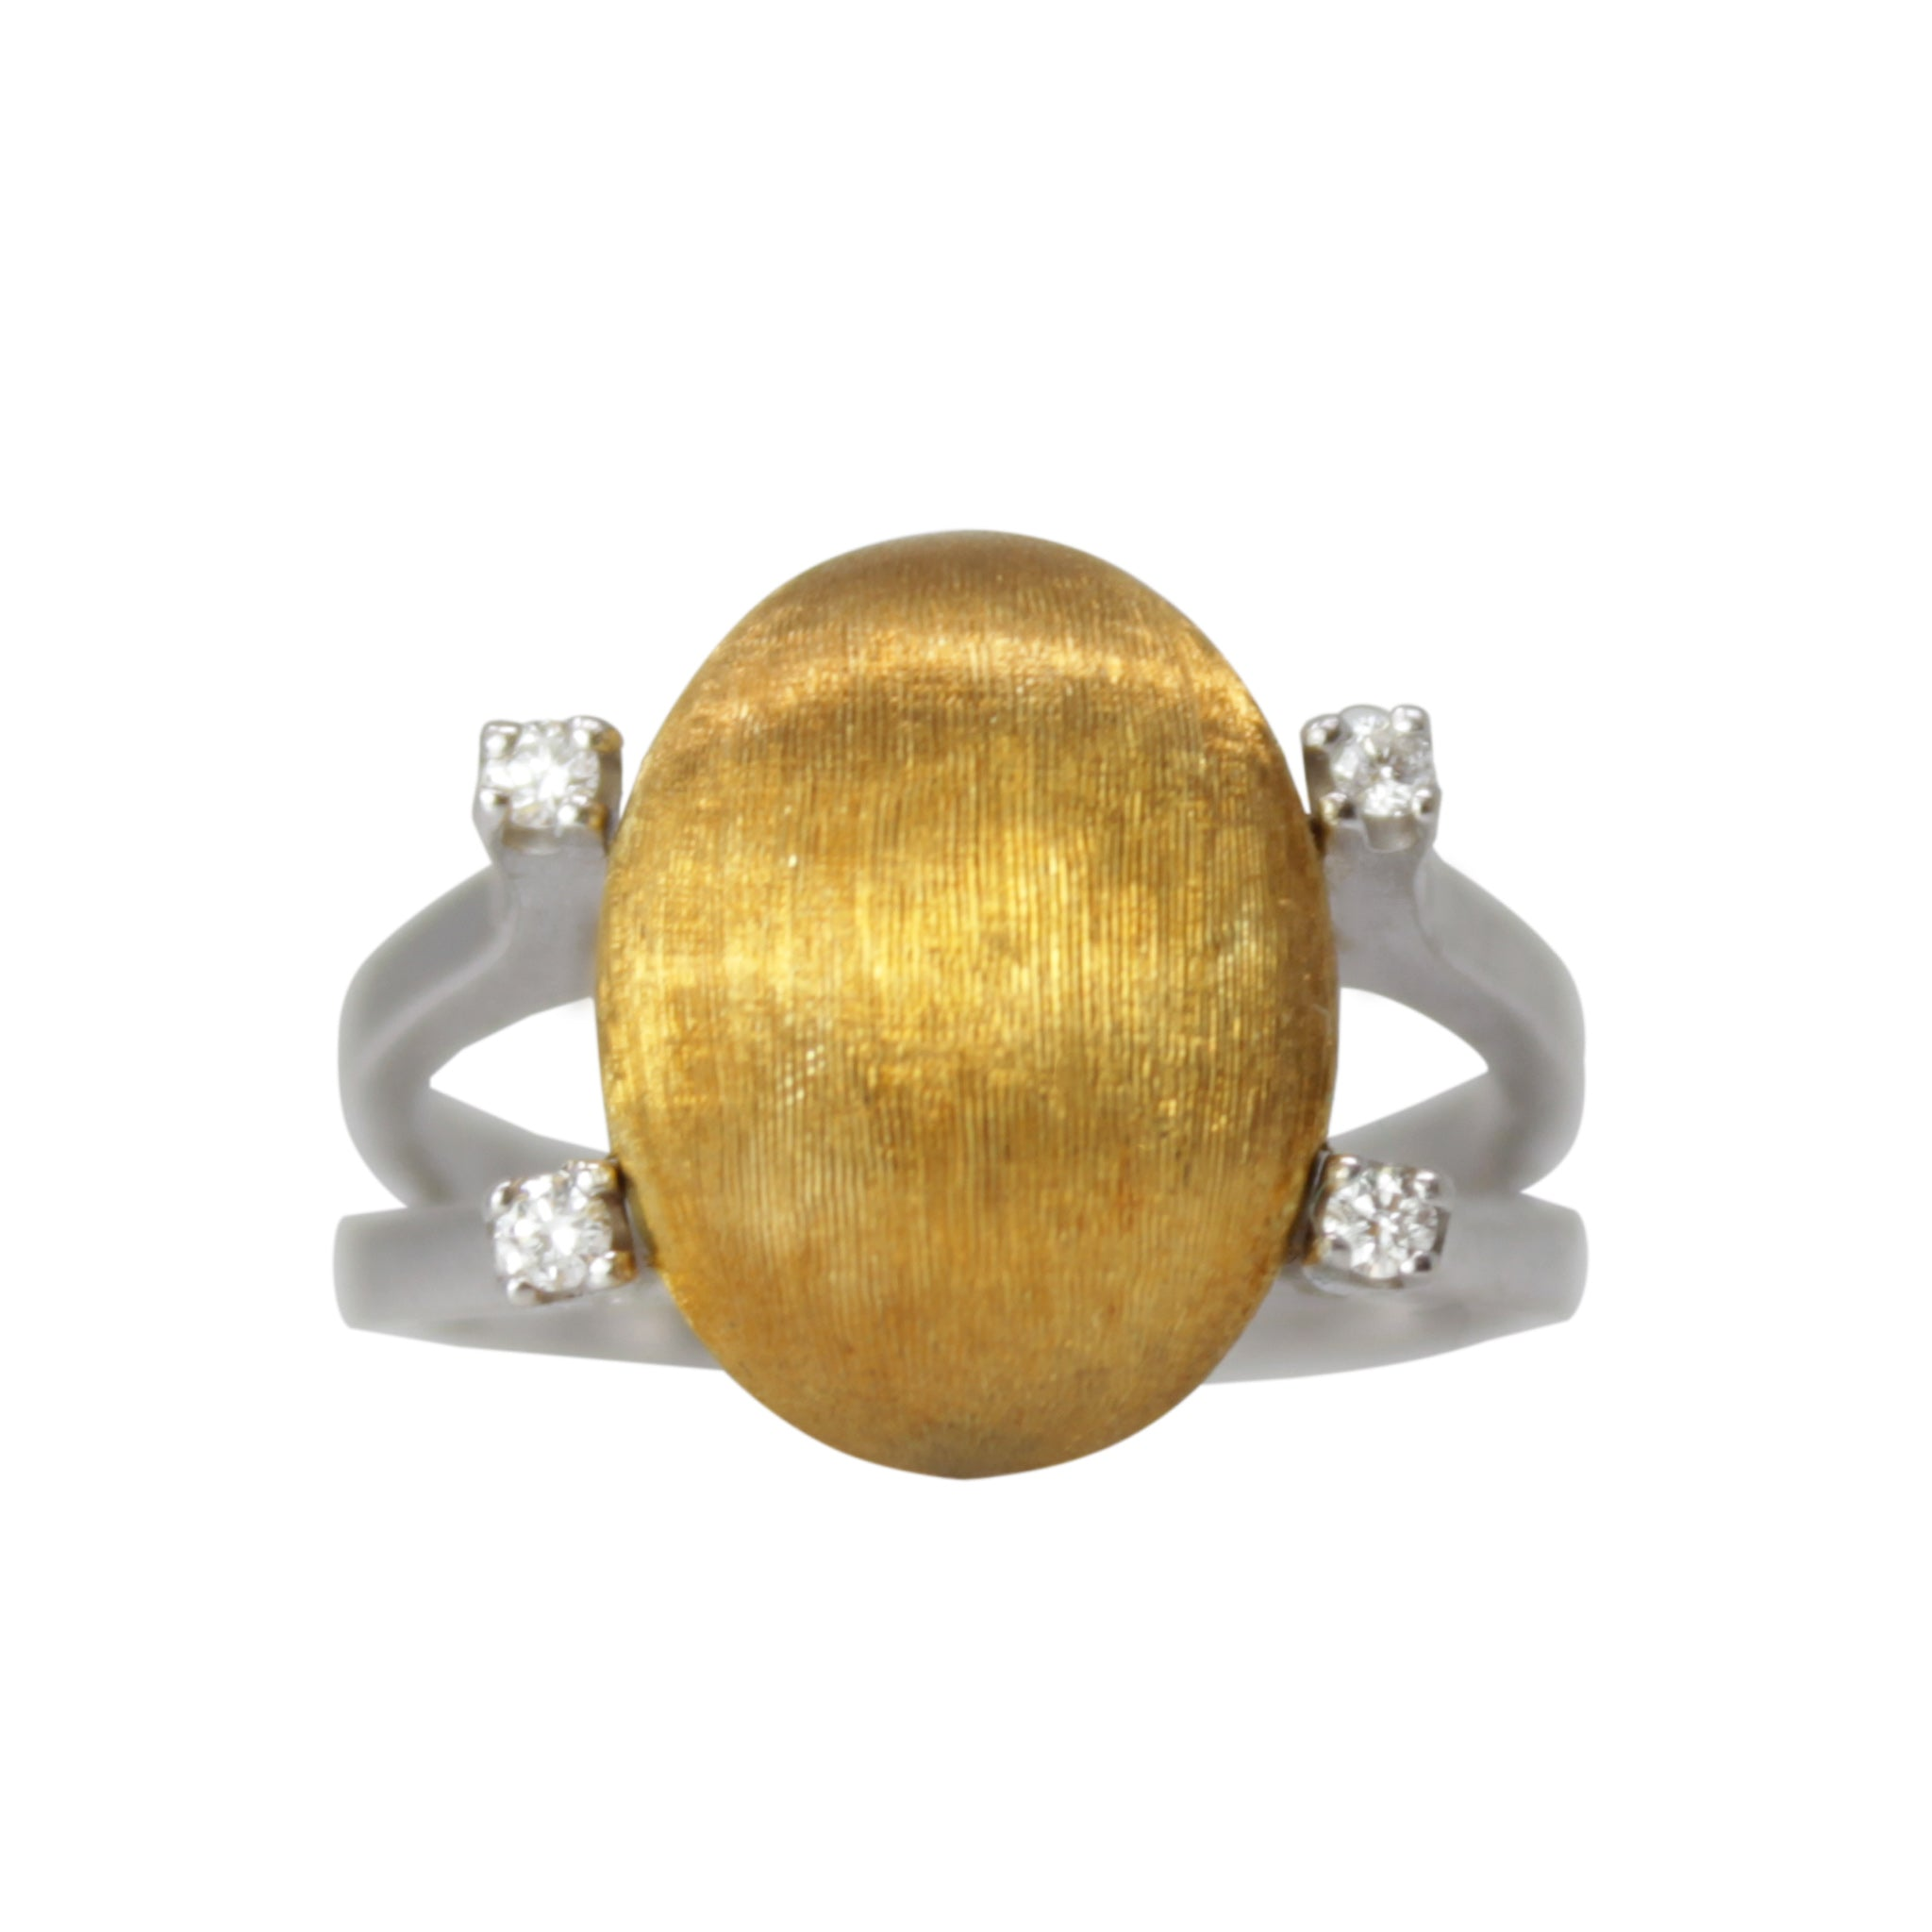 Golden Egg Ring - 18K White Gold Diamond Ring With Woven Gold